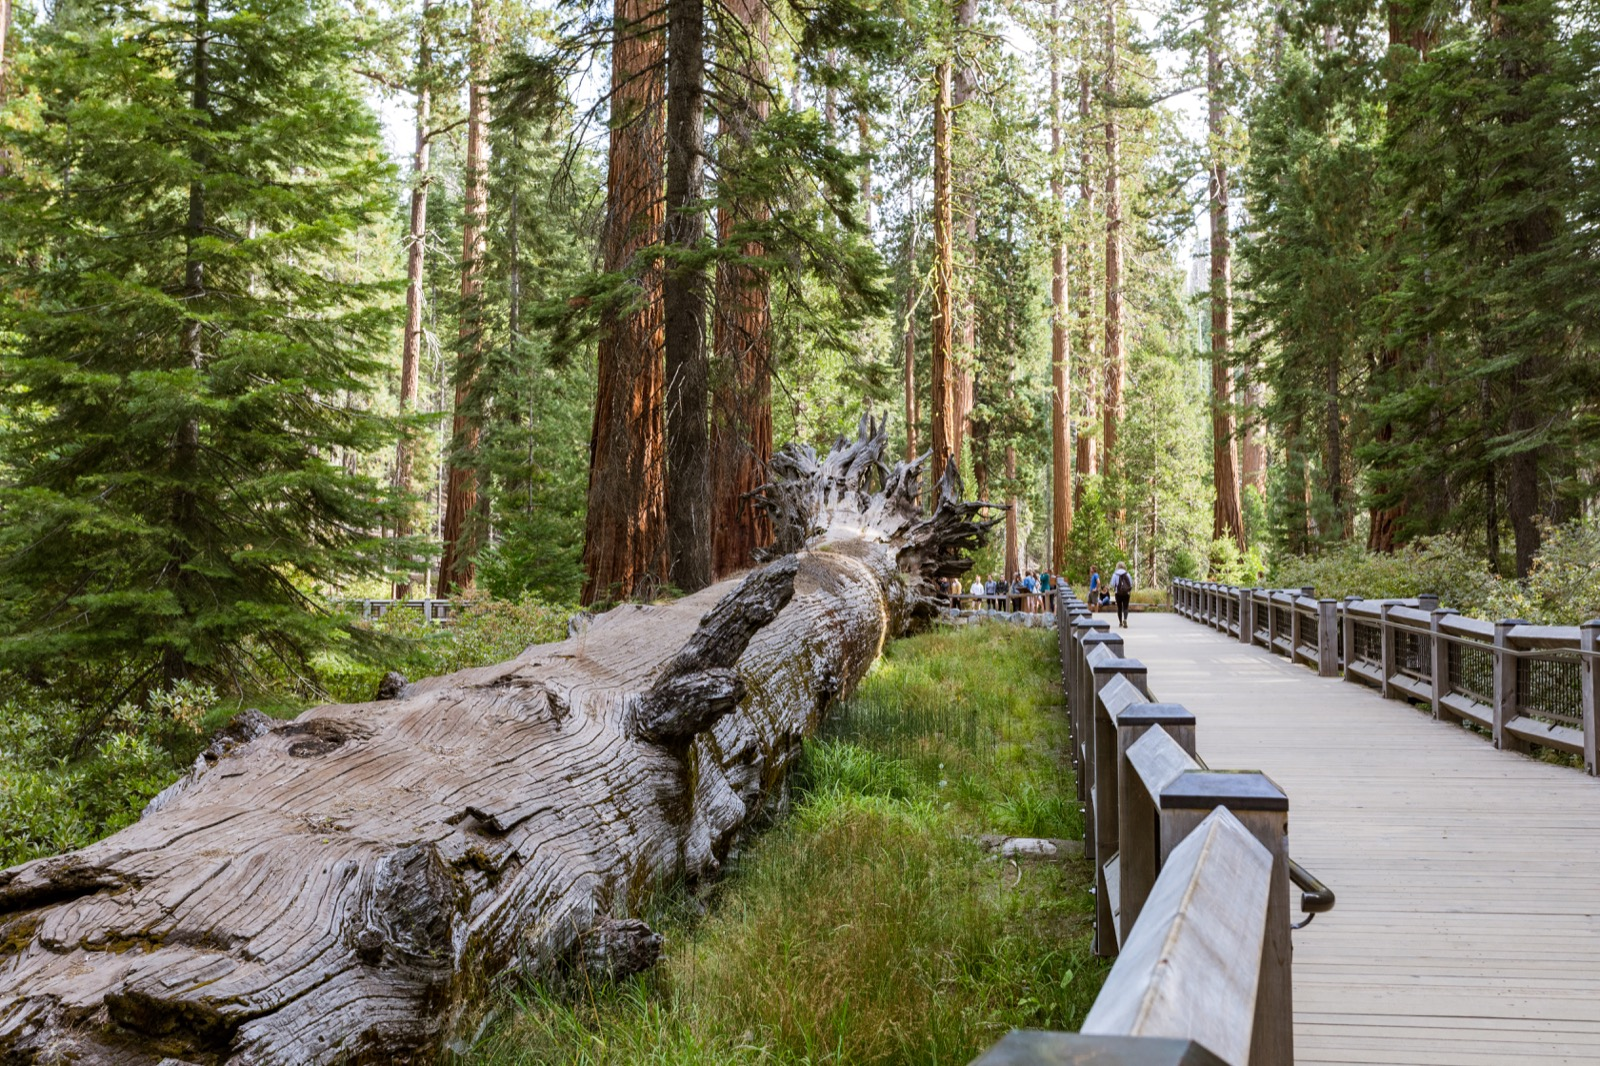 Fallen Monarch in the Mariposa Grove of Giant Sequoias, Yosemite National Park